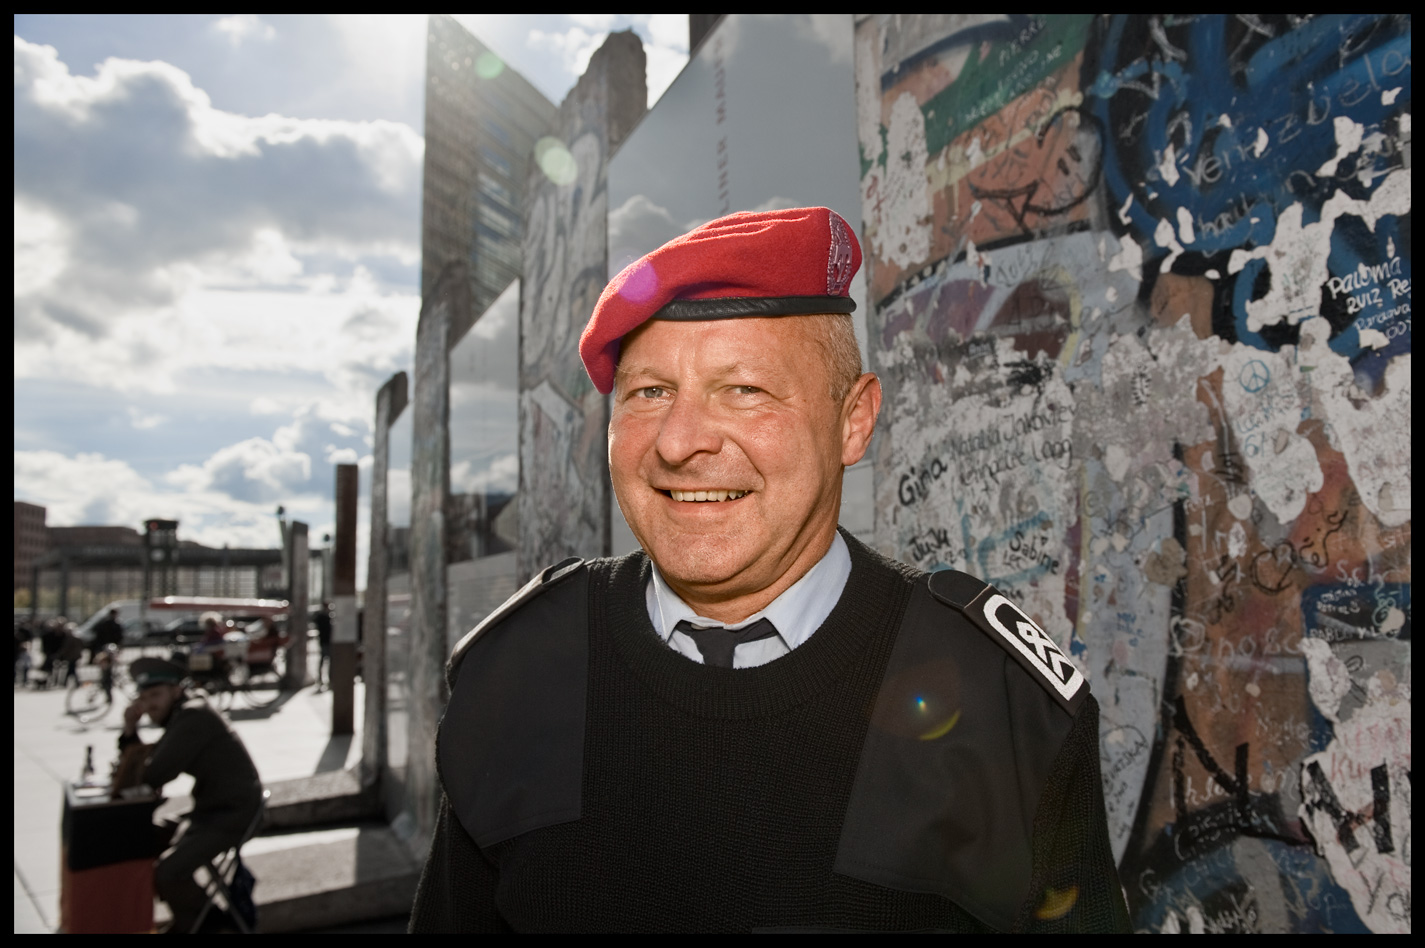 APF_BerlinWallSoldier